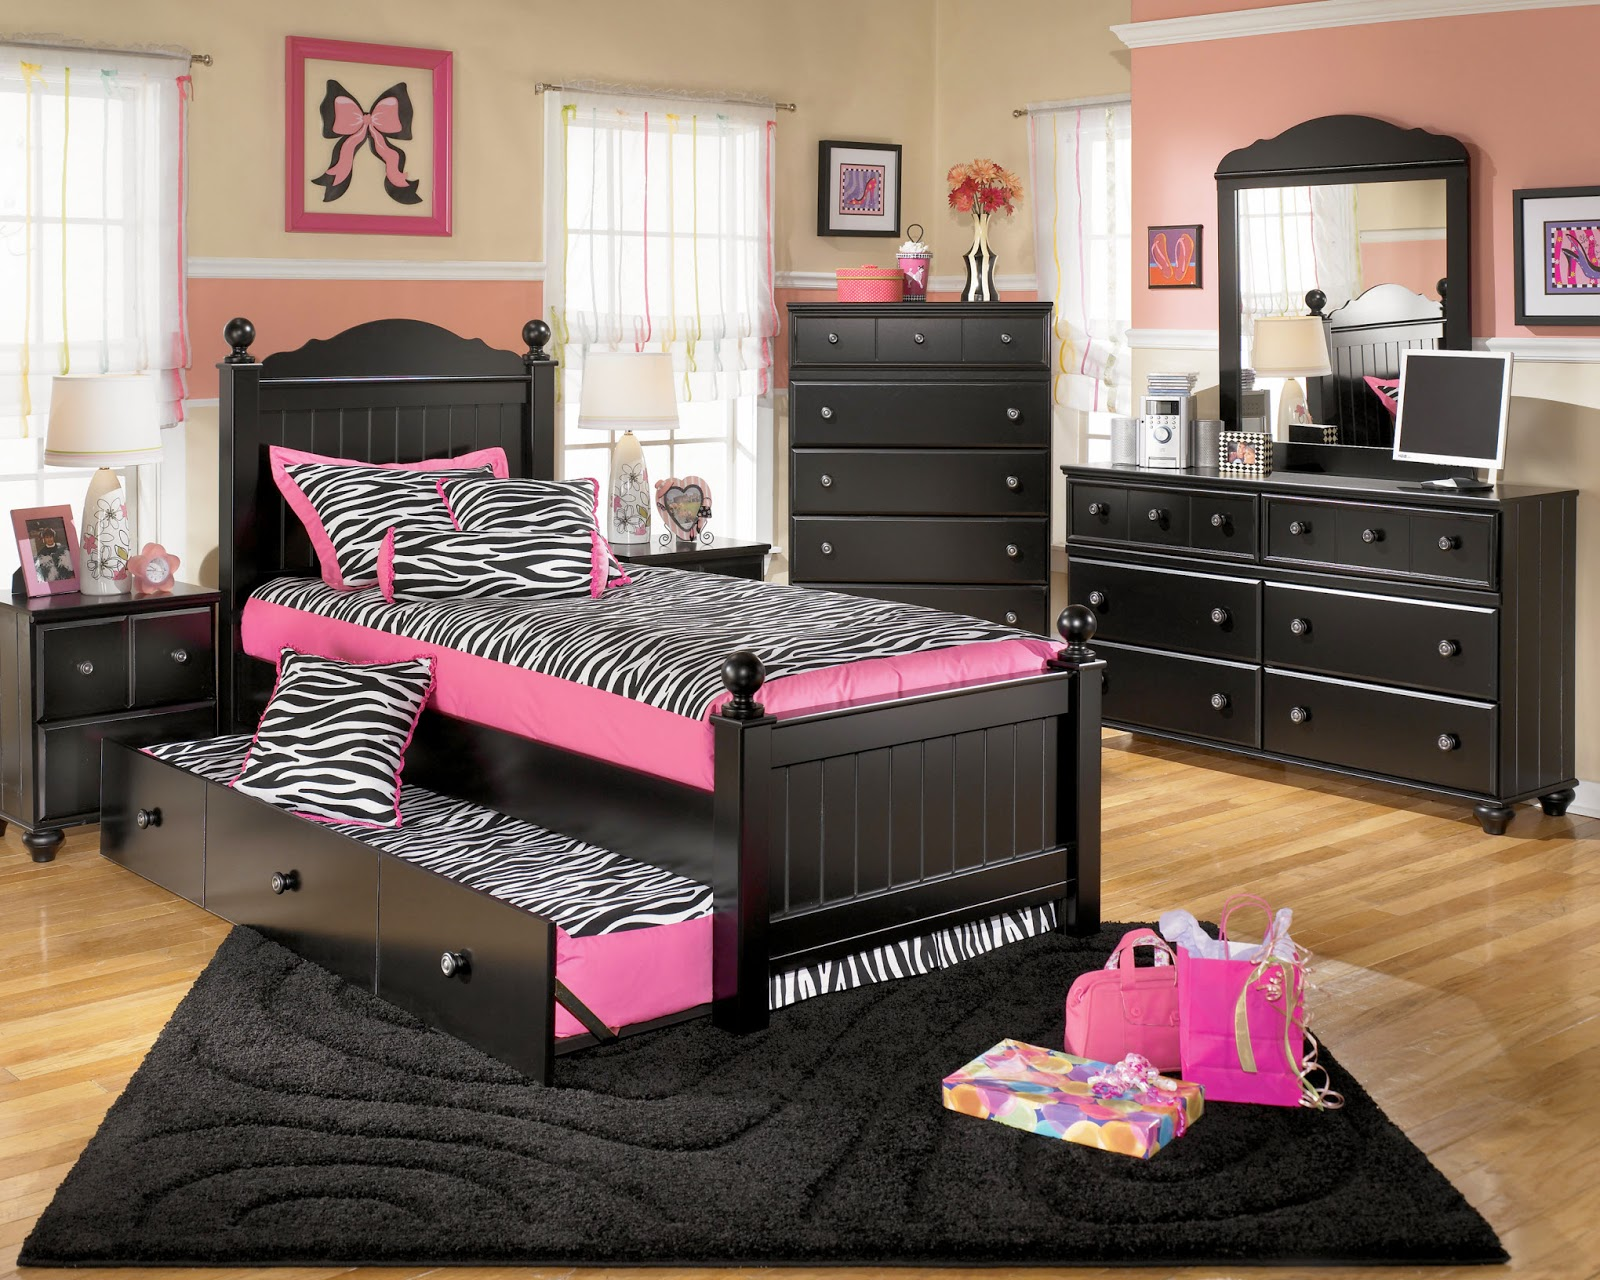 Merveilleux Kids Bedroom Furniture Sets For Girls